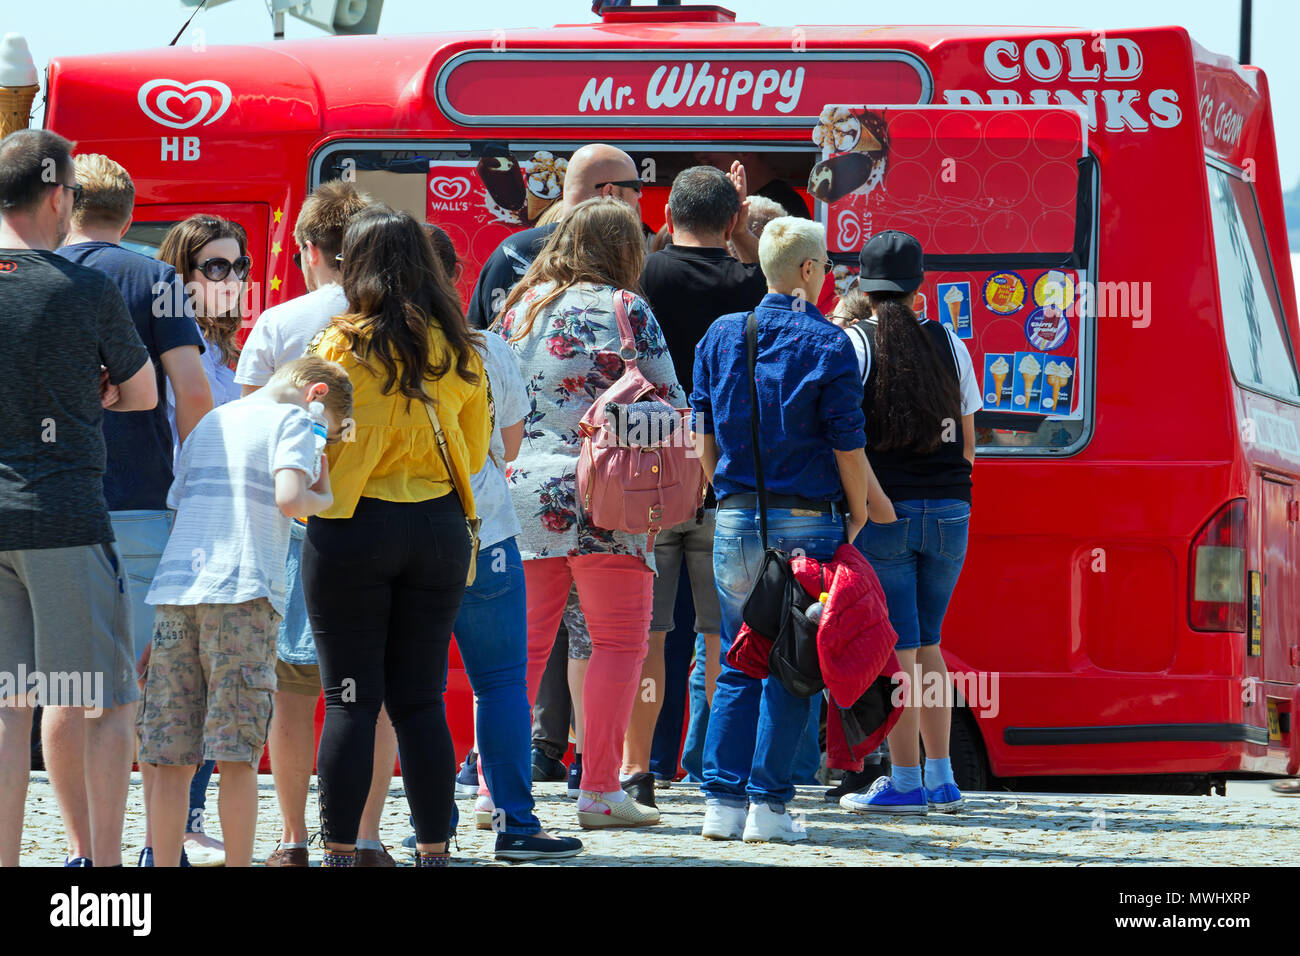 People queue for an ice cream from a Mr Whippy van during the hot weather - Stock Image